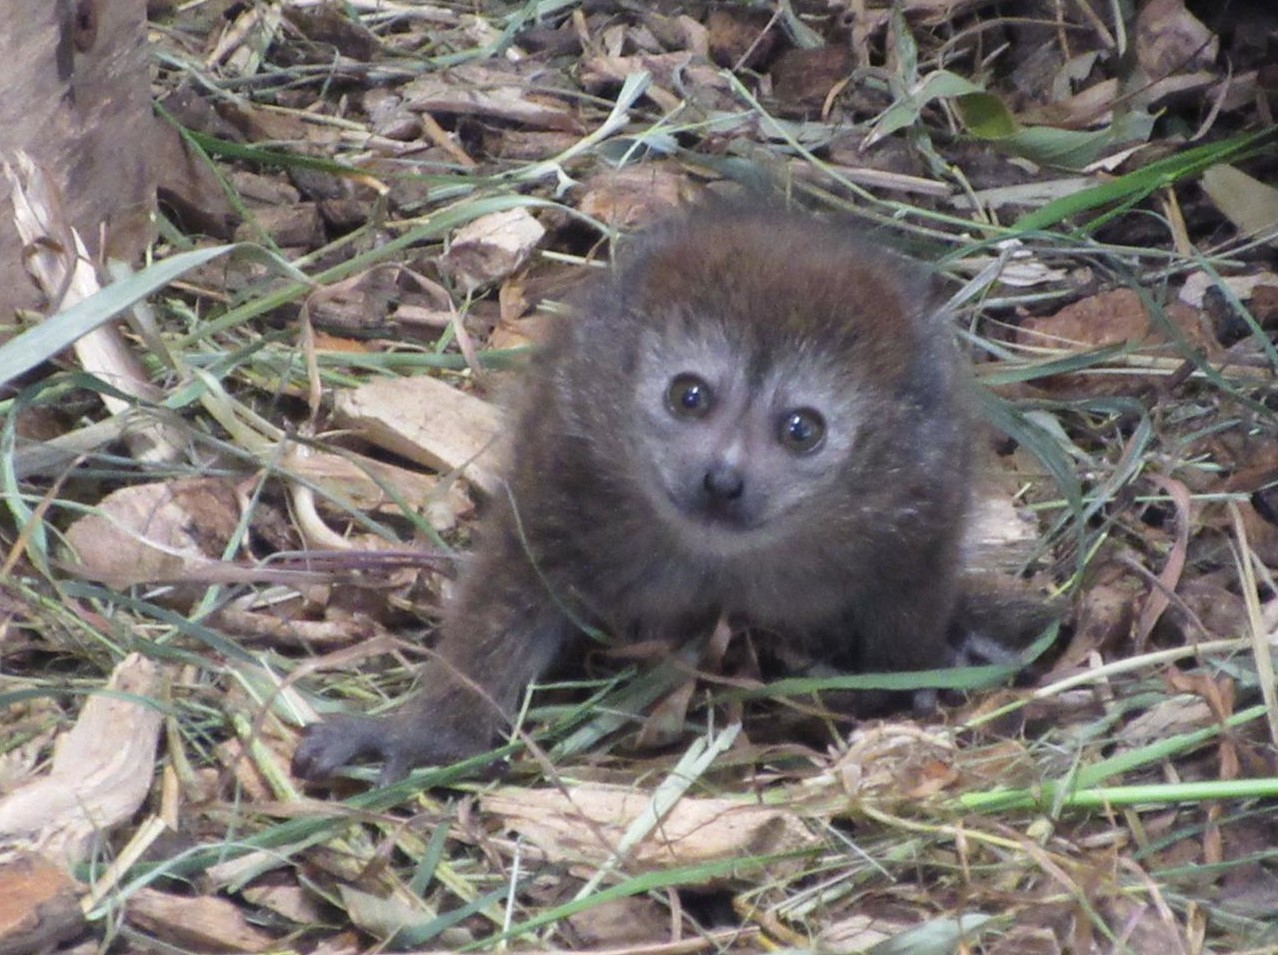 The baby lemur was born at Bristol's Wild Place Project (Wild Place Project/PA).